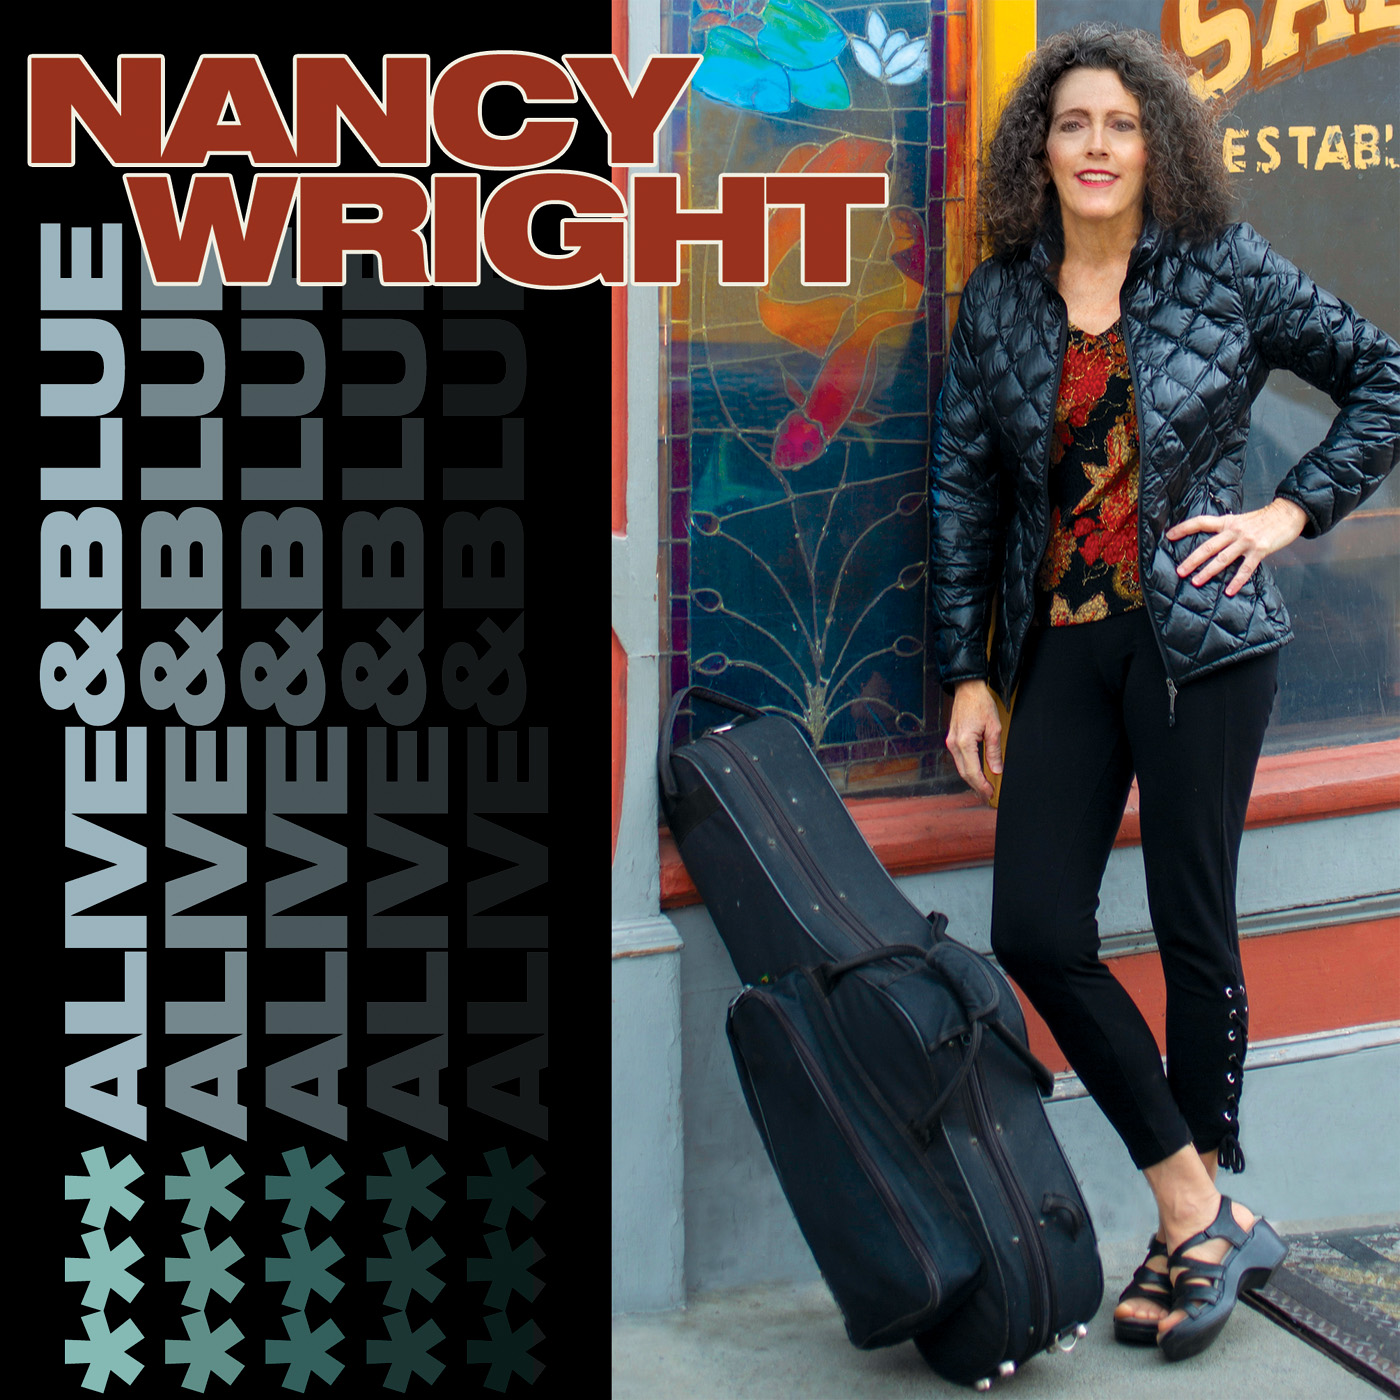 Nancy Wright BLUE & ALIVE